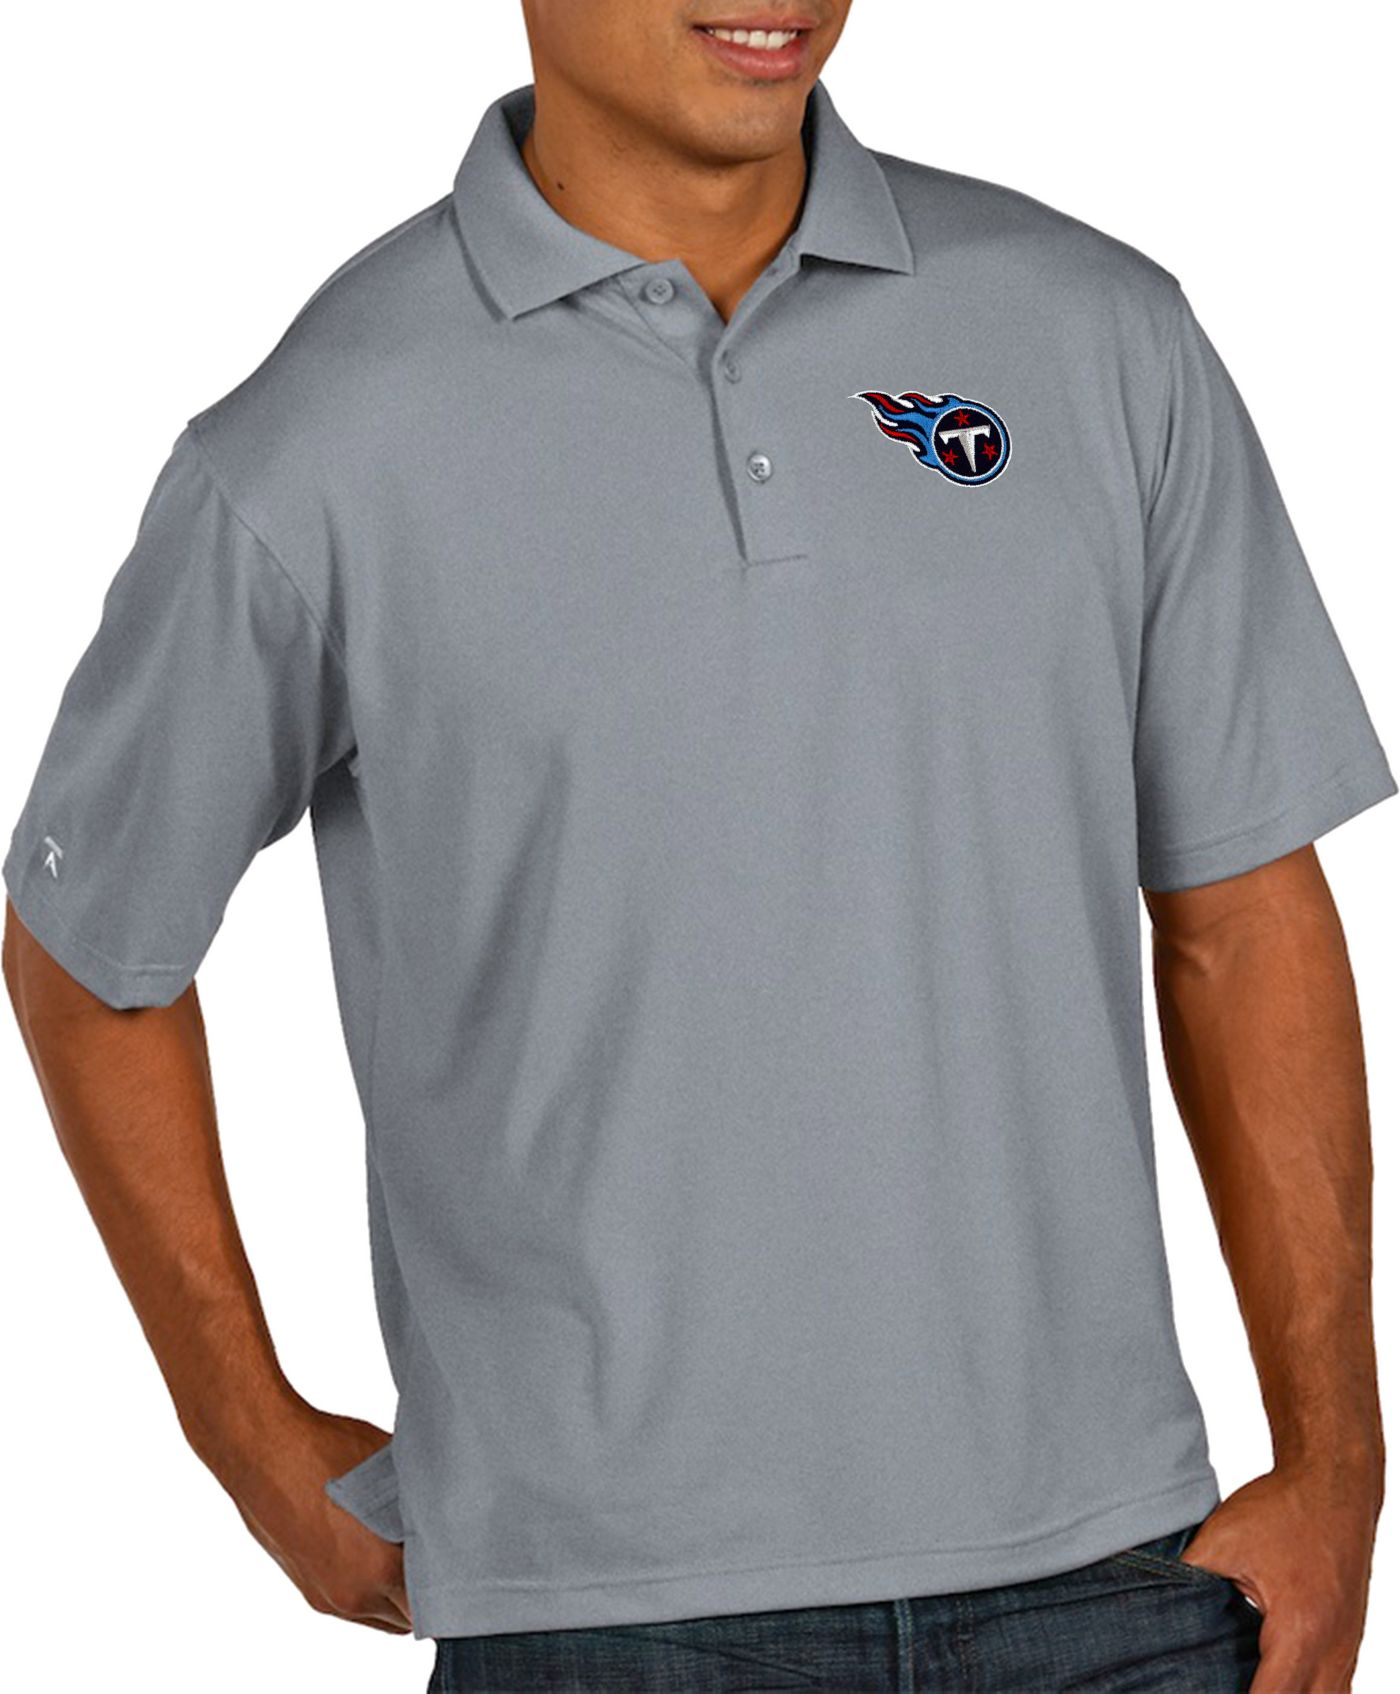 Antigua Men's Tennessee Titans Pique Xtra-Lite Performance Grey Polo